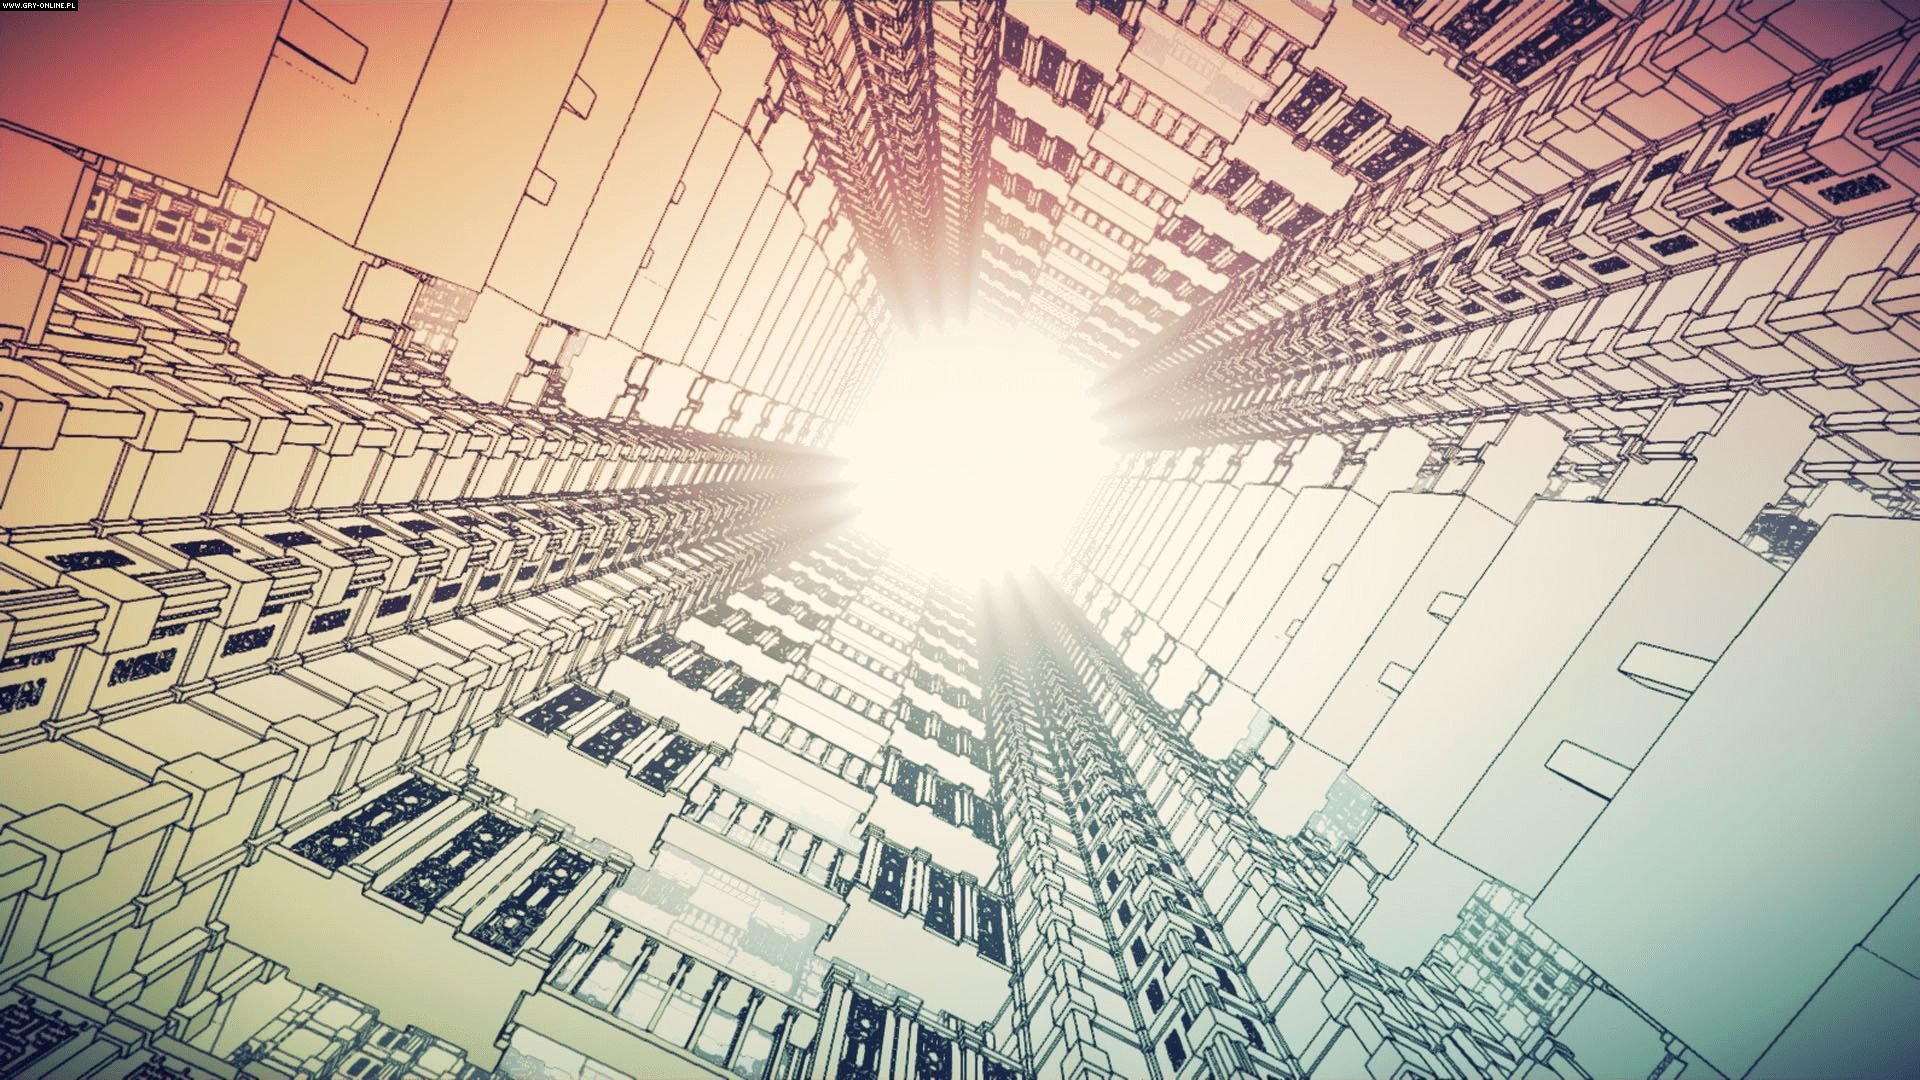 Manifold Garden PC, PS4 Gry Screen 11/23, William Chyr Studio